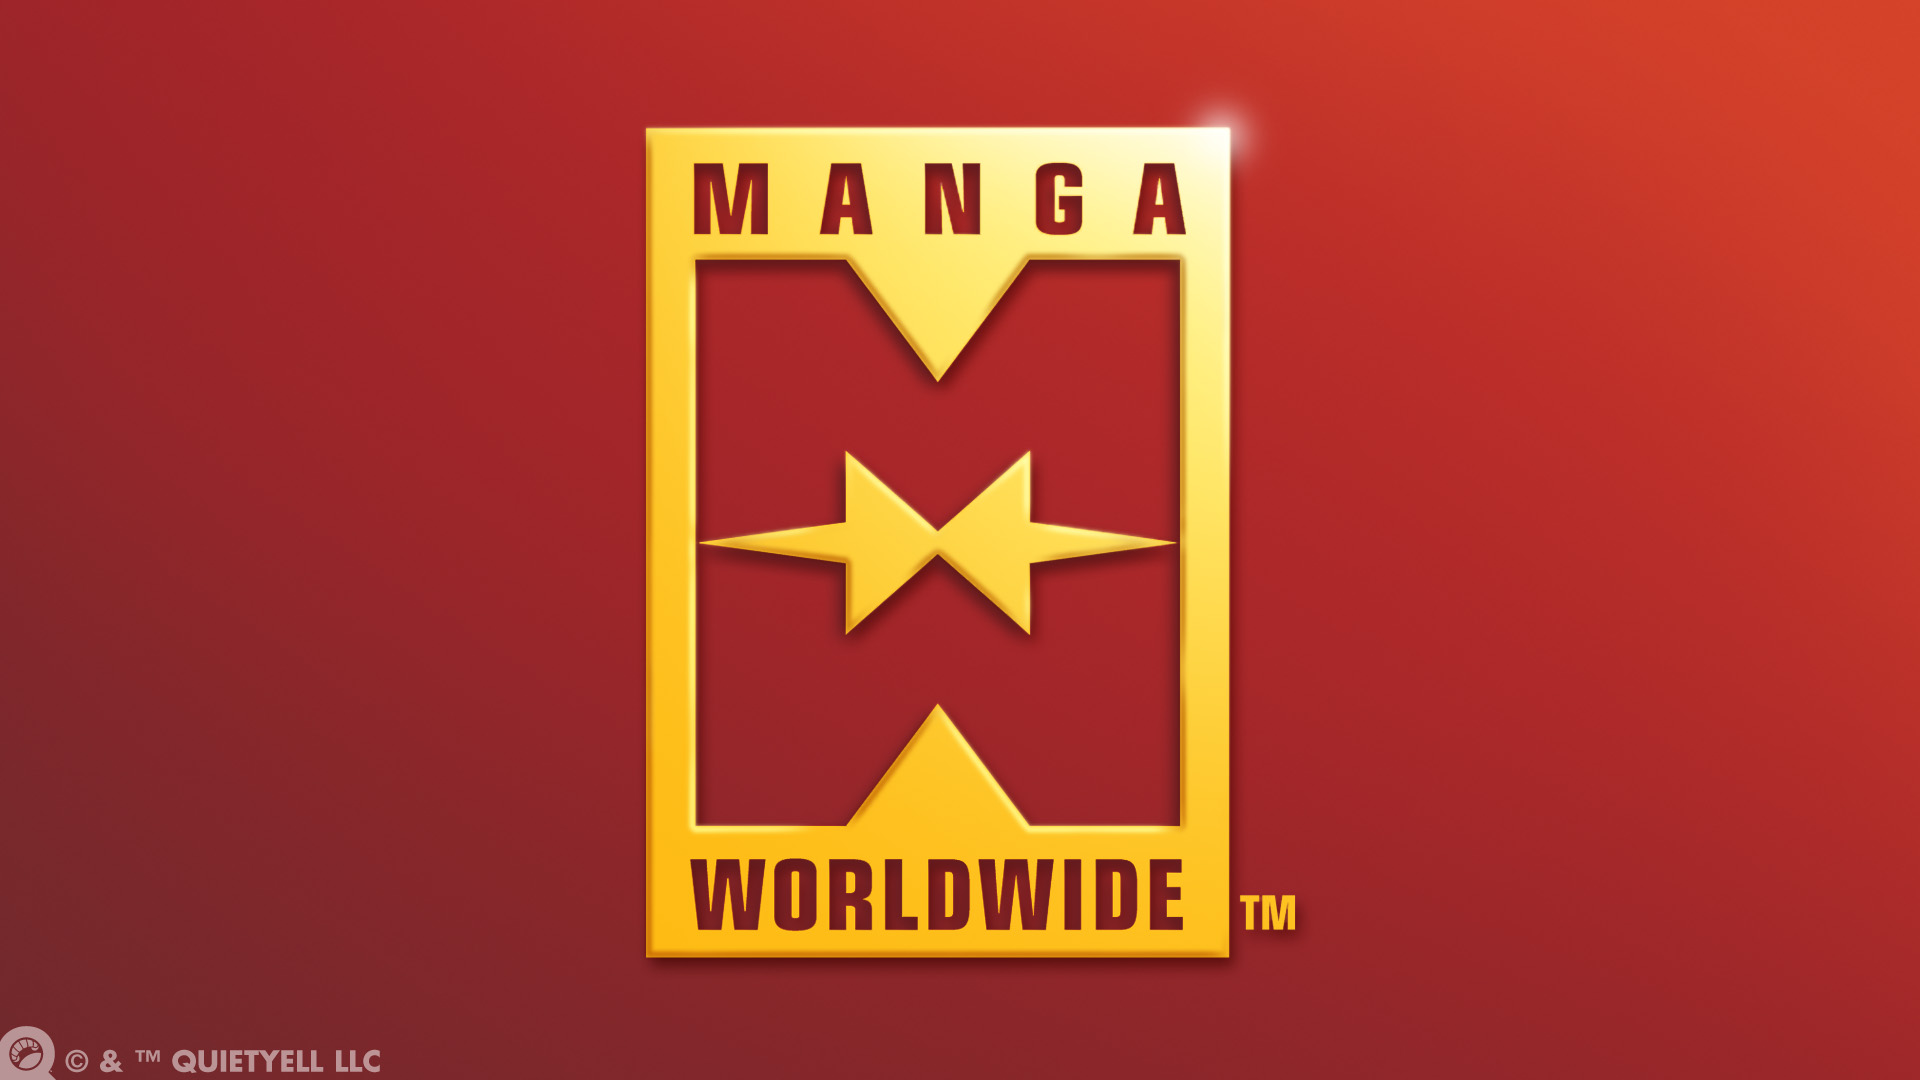 quietyell_branding_full_mangaworldwide_01